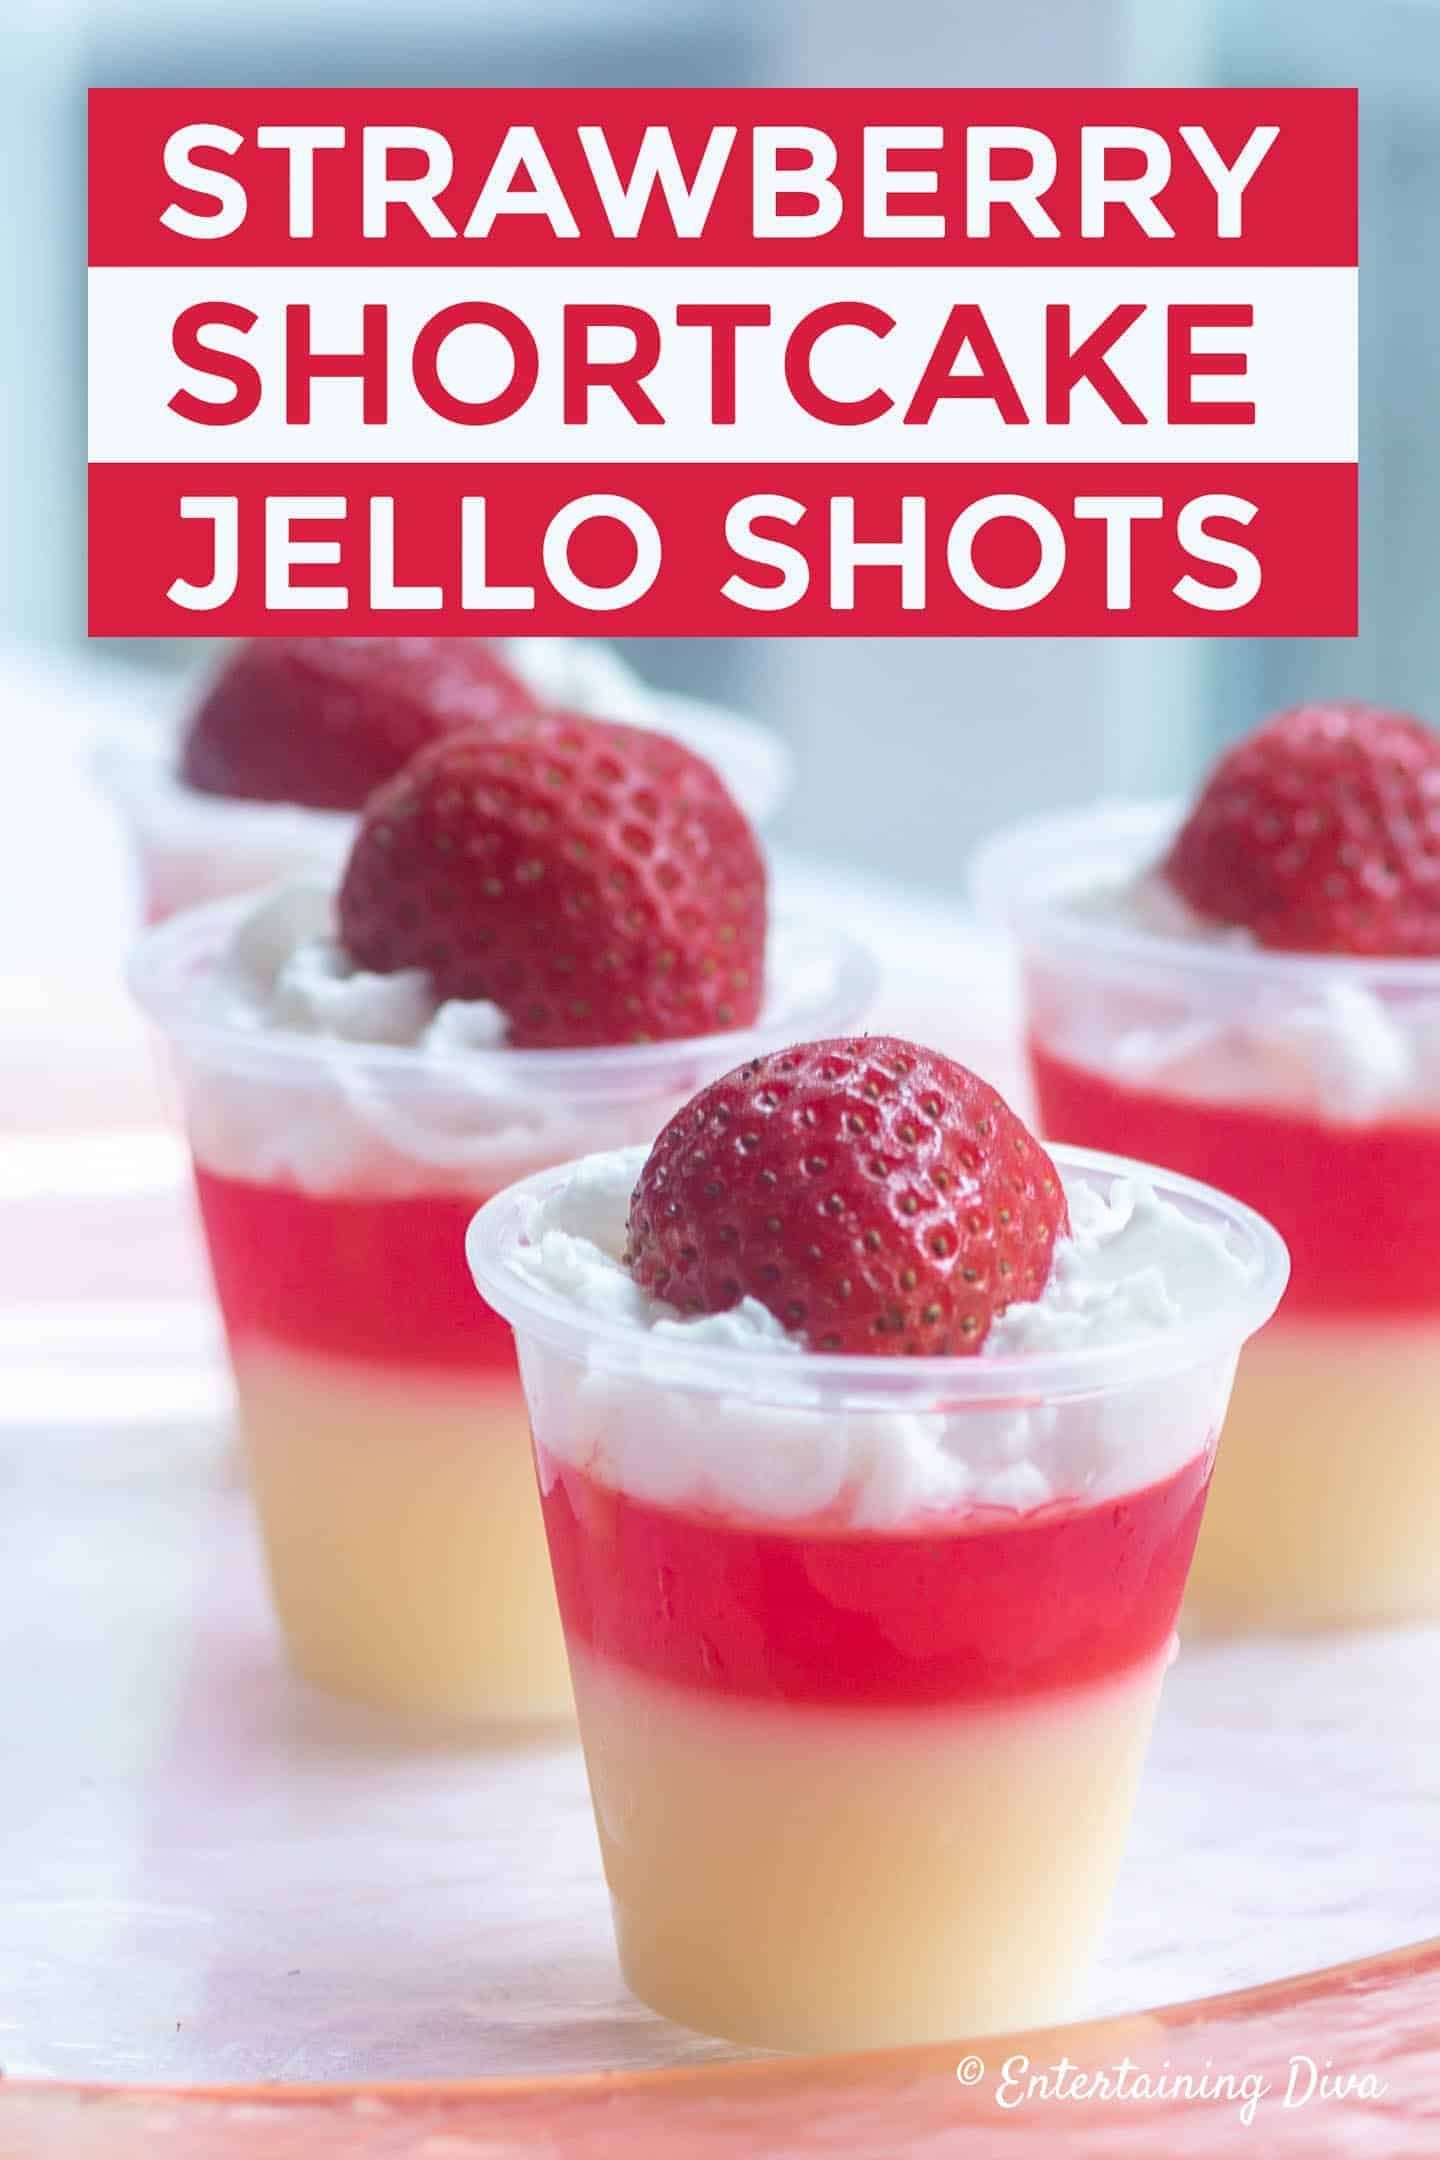 Red and White Strawberry Shortcake Jello Shots Recipe - Entertaining Diva Recipes @ From House To Home